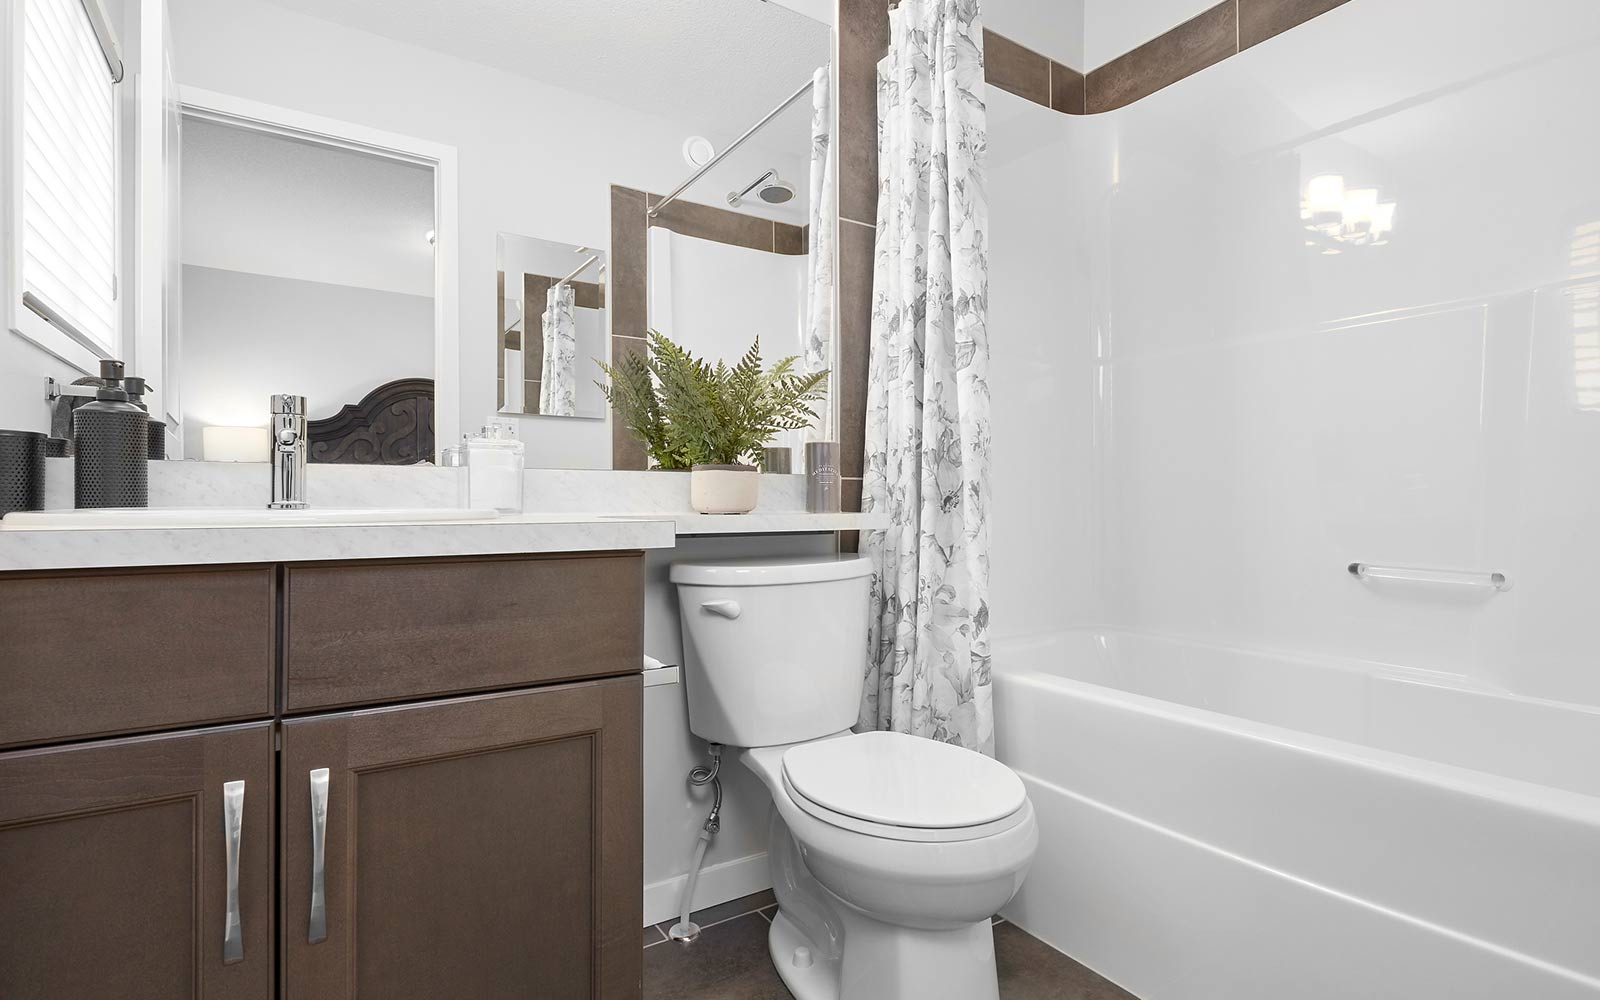 Ensuite in the Mcleod model by Brookfield Residential in Edmonton.